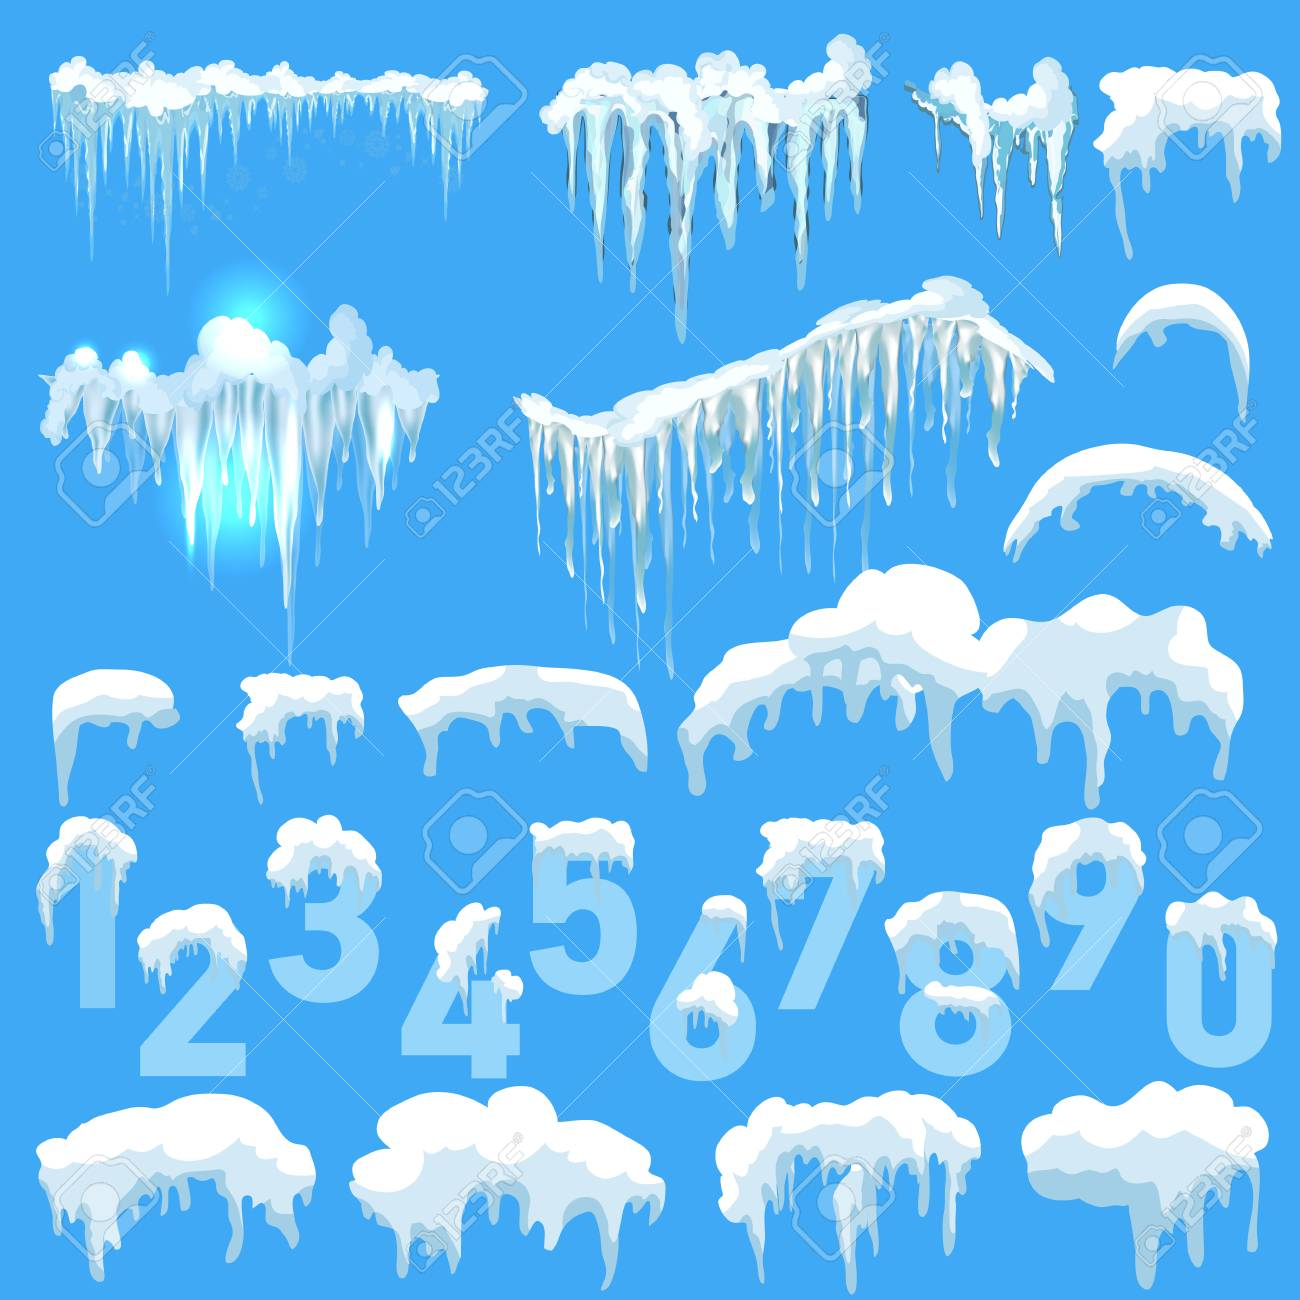 text 2018 snow ice icicle set winter design white blue snow